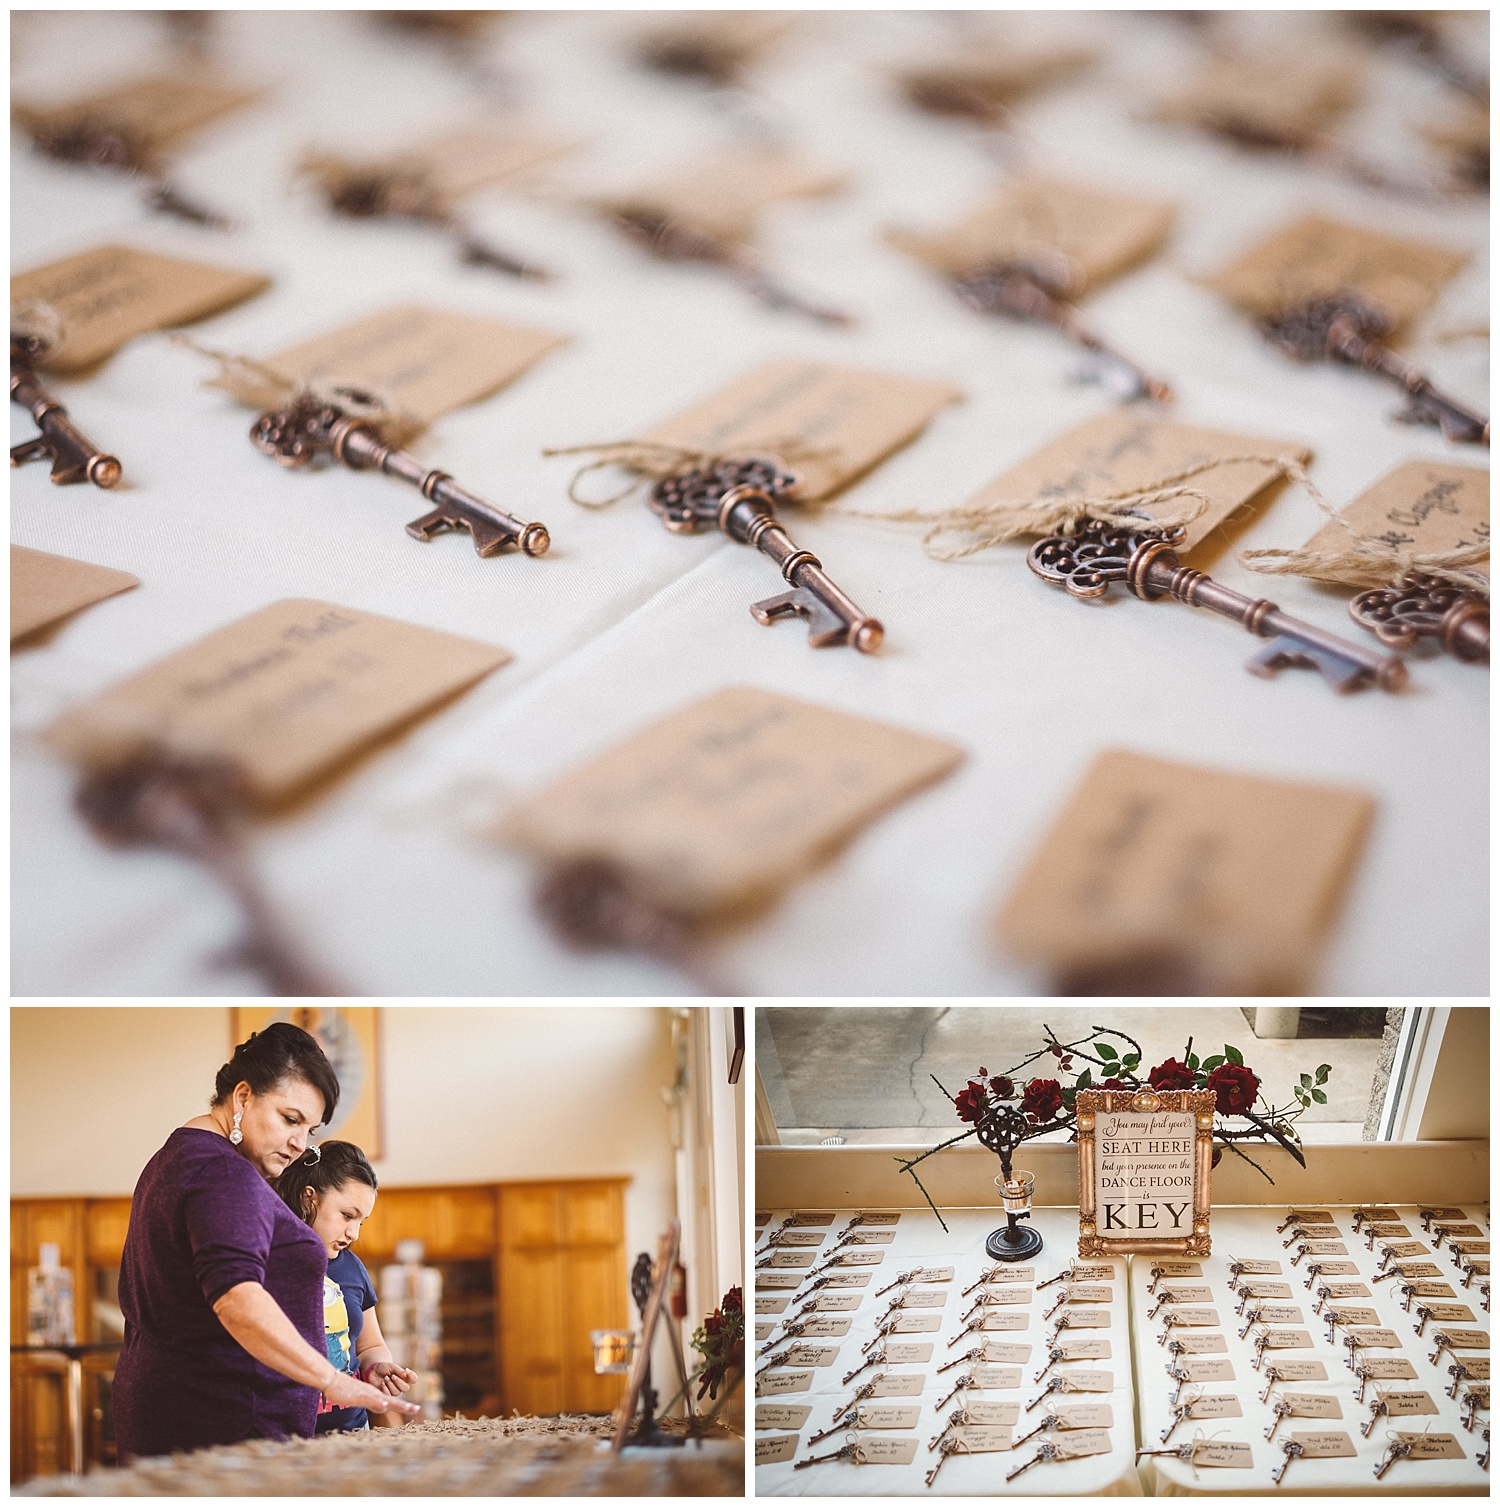 Wedding Decor using Old Keys